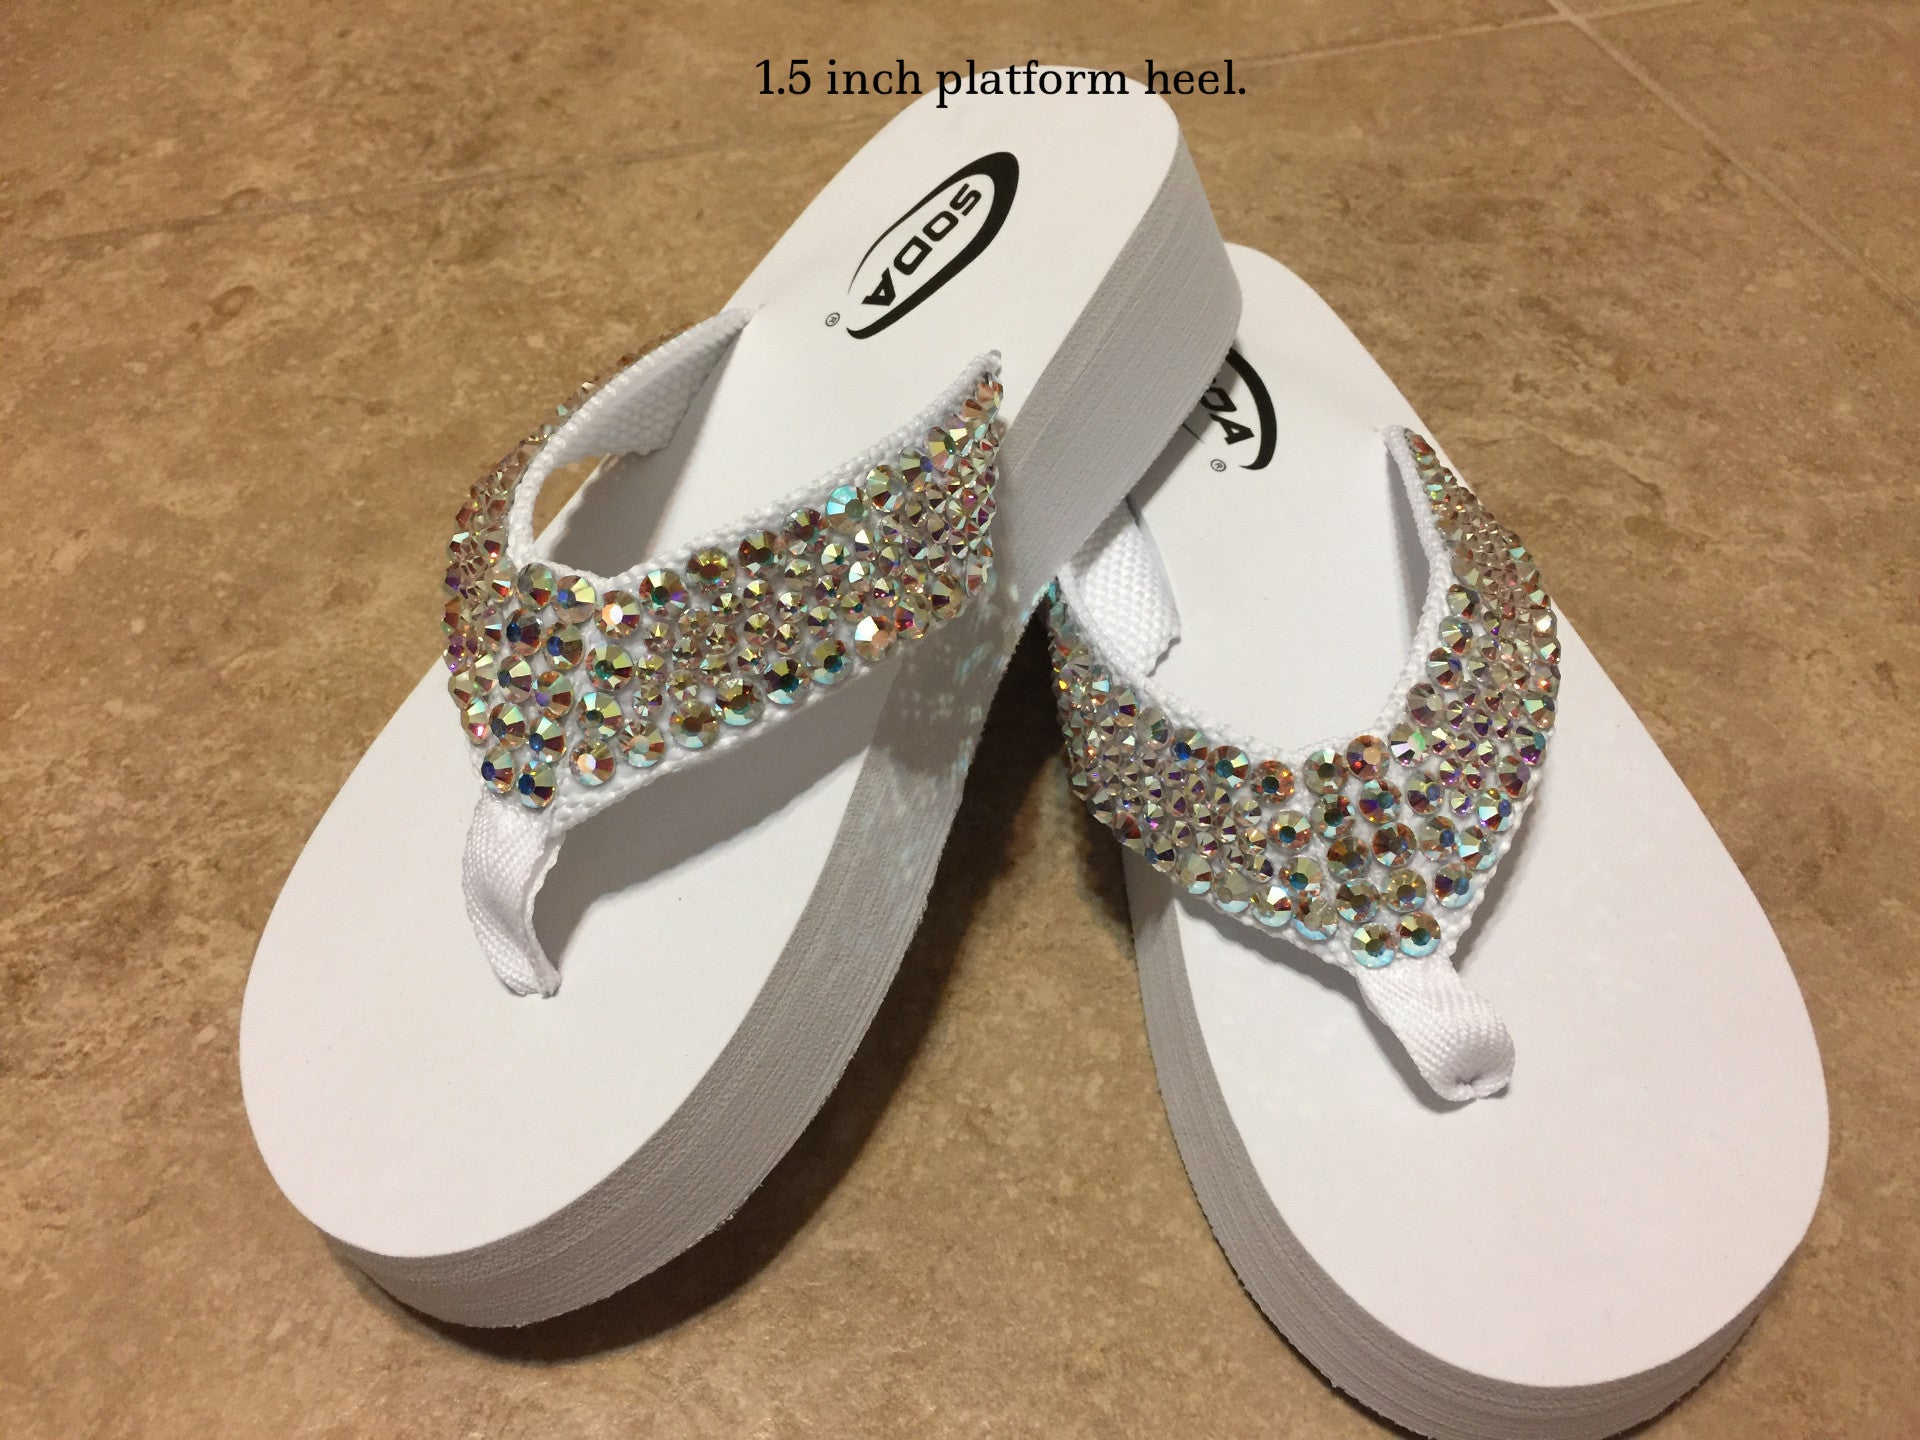 22807a16325e Diamond Diva s White Wedding Swarovksi Crystal Platform Flip-flops Sandals  by Sparkle Steps